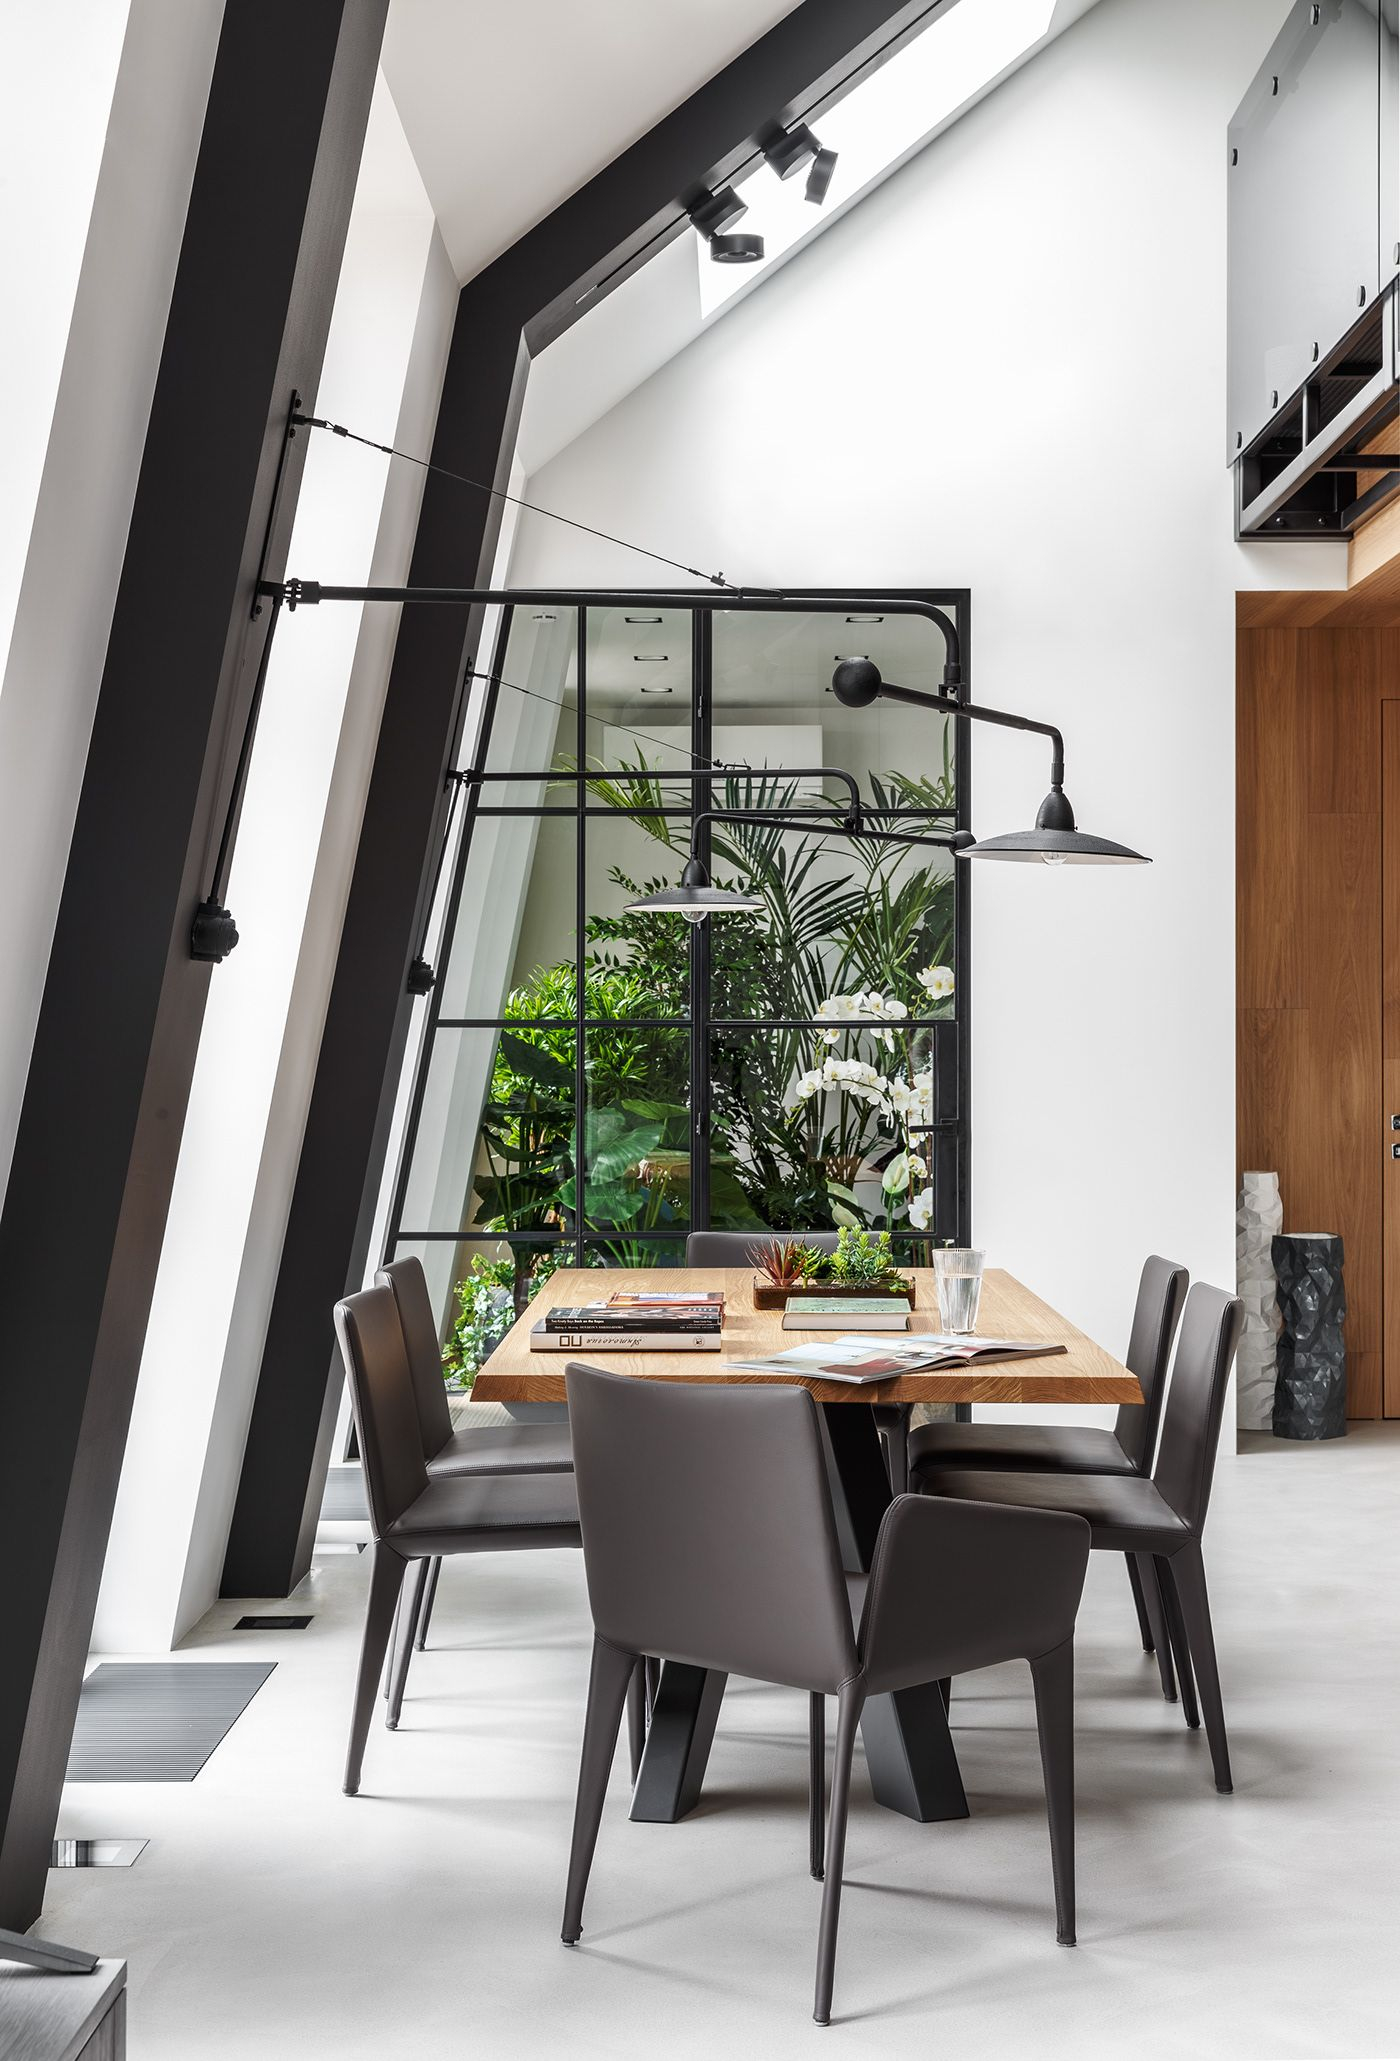 Loft apartments on Behance in 2019 | Interior architecture ...